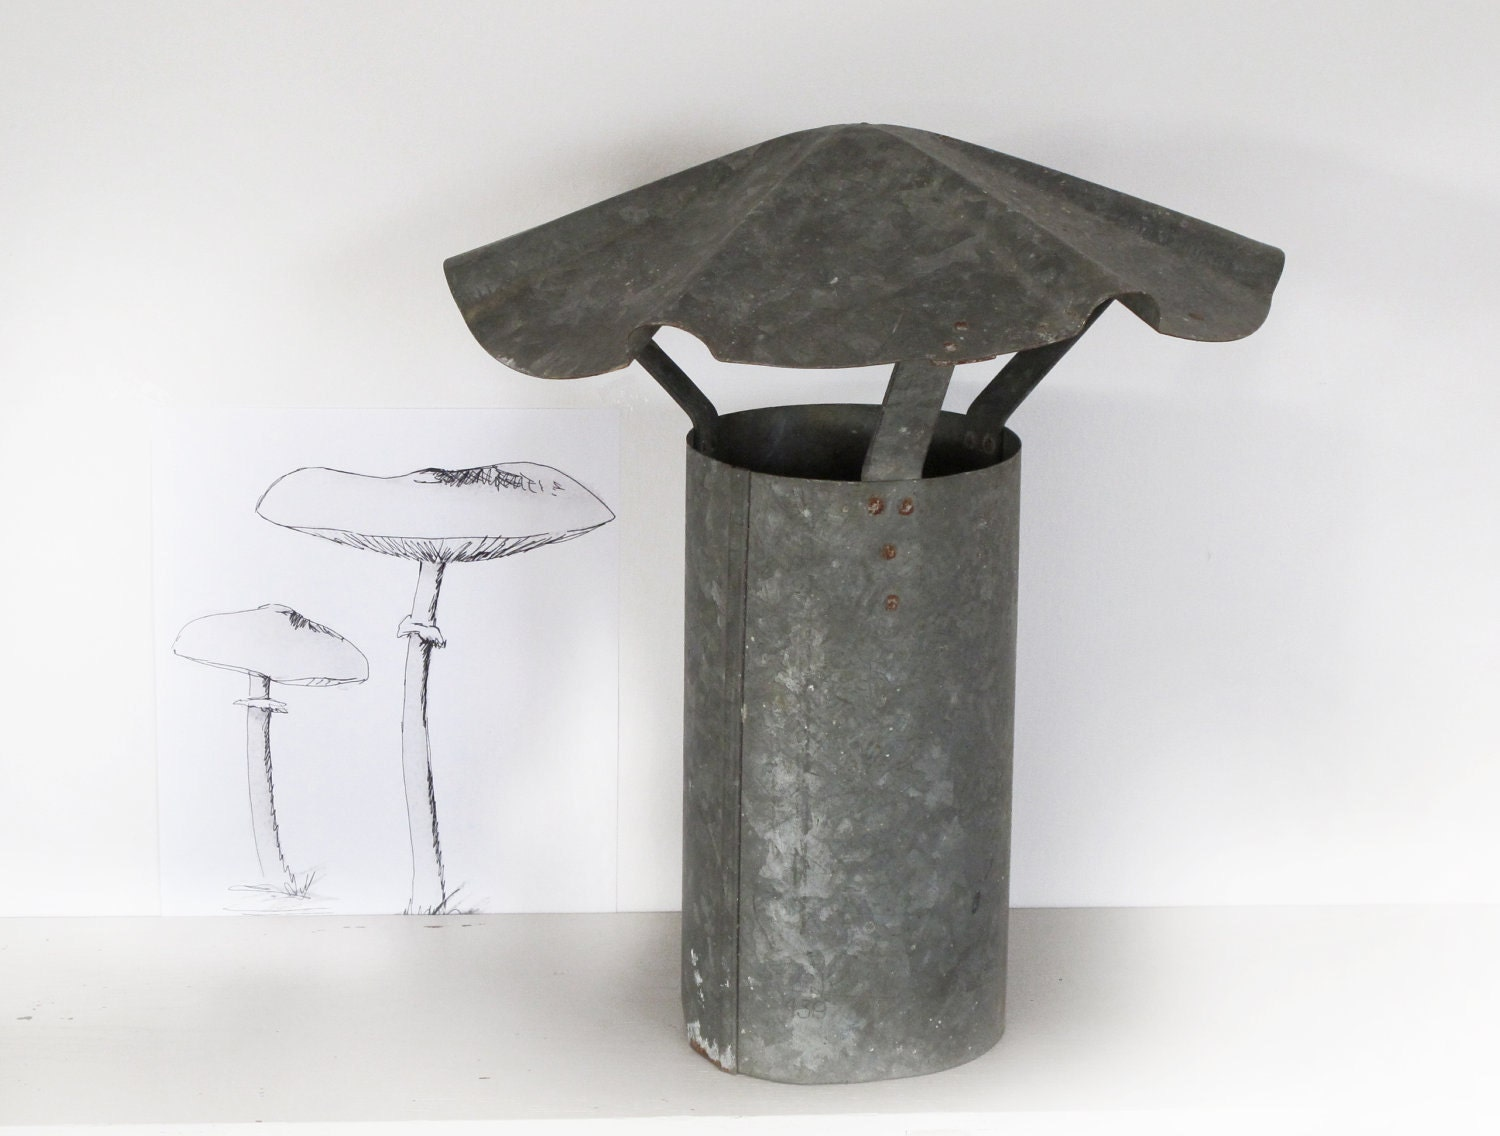 French Chimney Caps : Reserved old french chimney cap galvanized metal so parisian